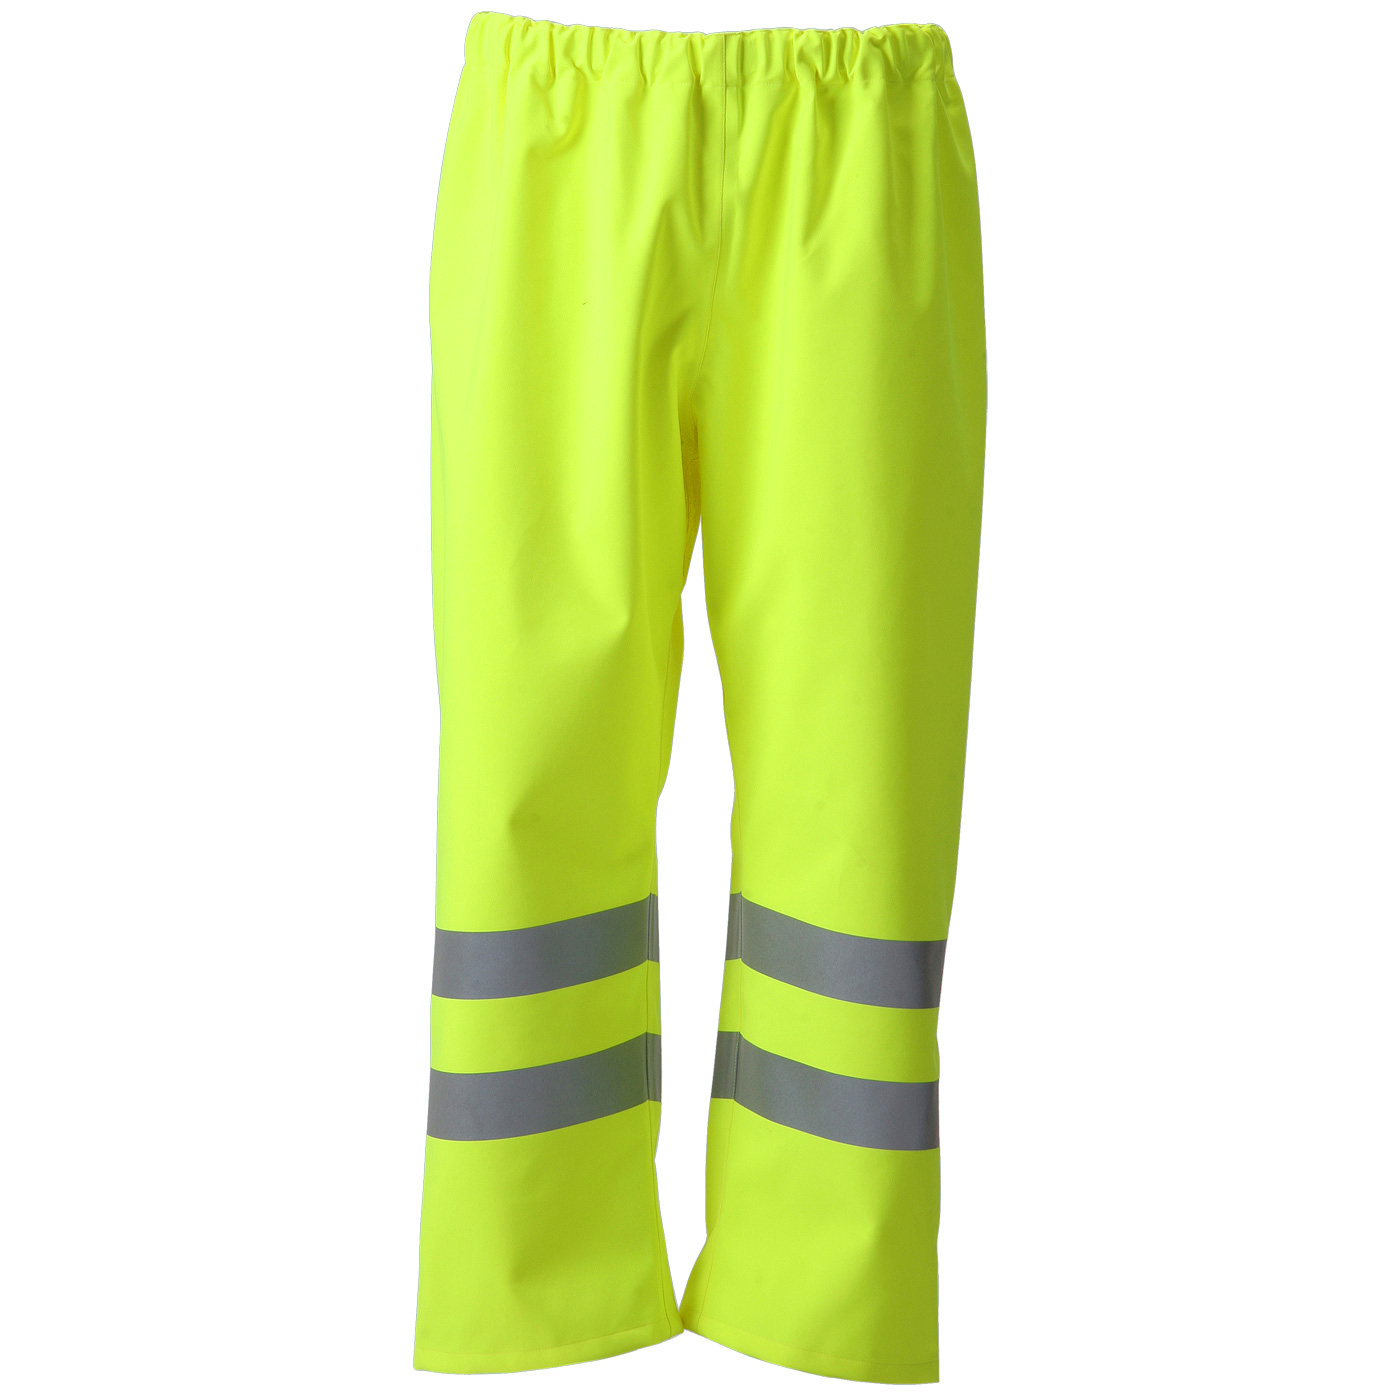 Body Protection B-Seen Gore-Tex Over Trousers Foul Weather XL Saturn Yellow Ref GTHV160SYXL *Up to 3 Day Leadtime*